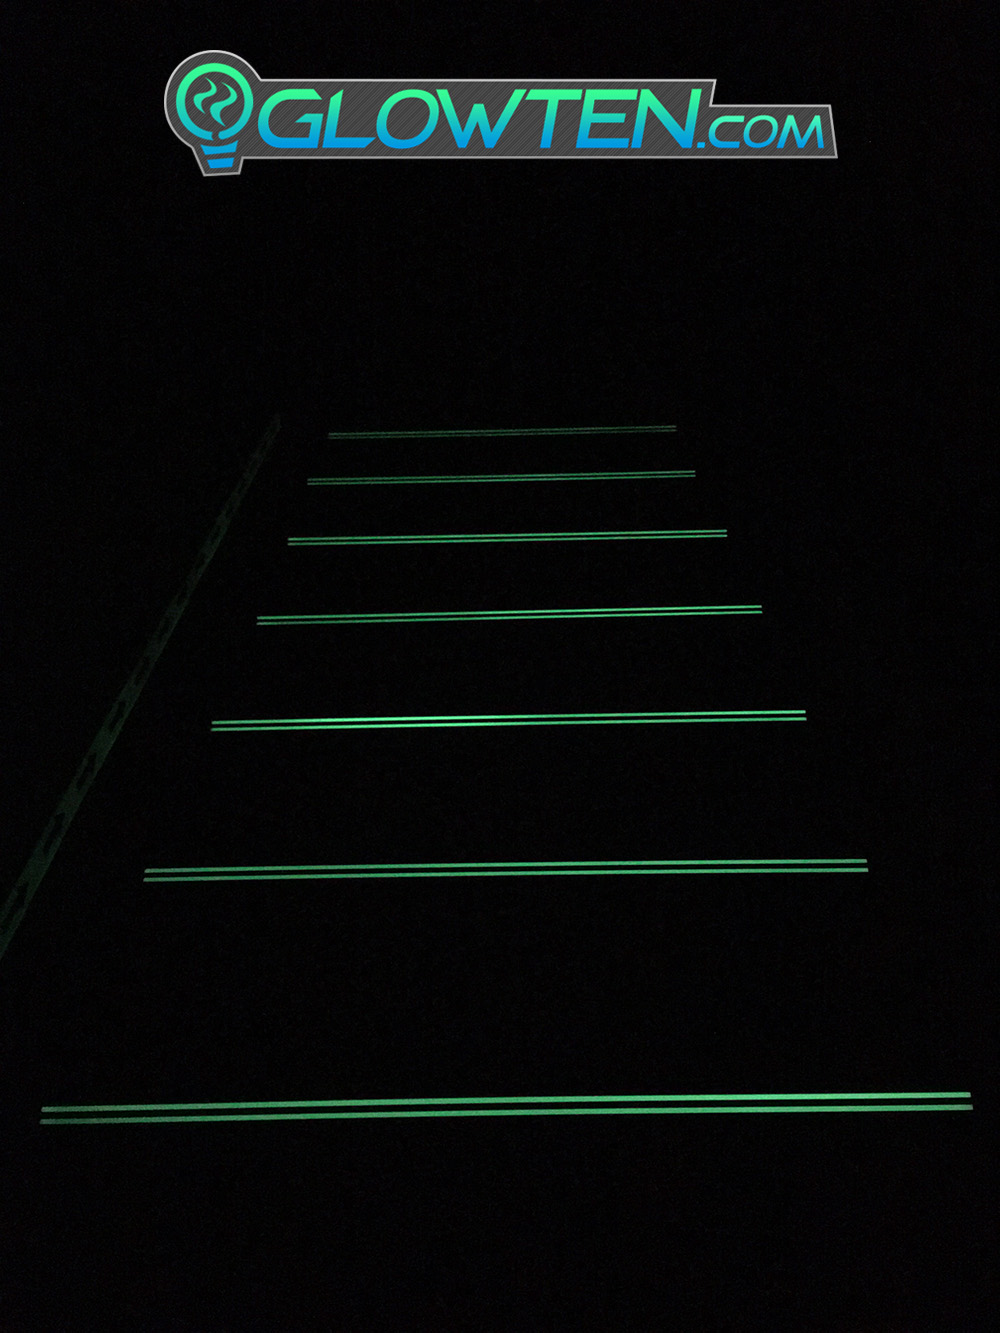 GLOWTEN.com - BLACK METAL ANTI-SLIP STAIRS TREAD 2-BANDS NOSING GLOW IN THE DARK LUMINOUS SAFETY STRIP NON-SKID SEE BETTER AT NIGHT PREVENT FALLING GRIP STRENGTH FOR MINIMUM 31.5